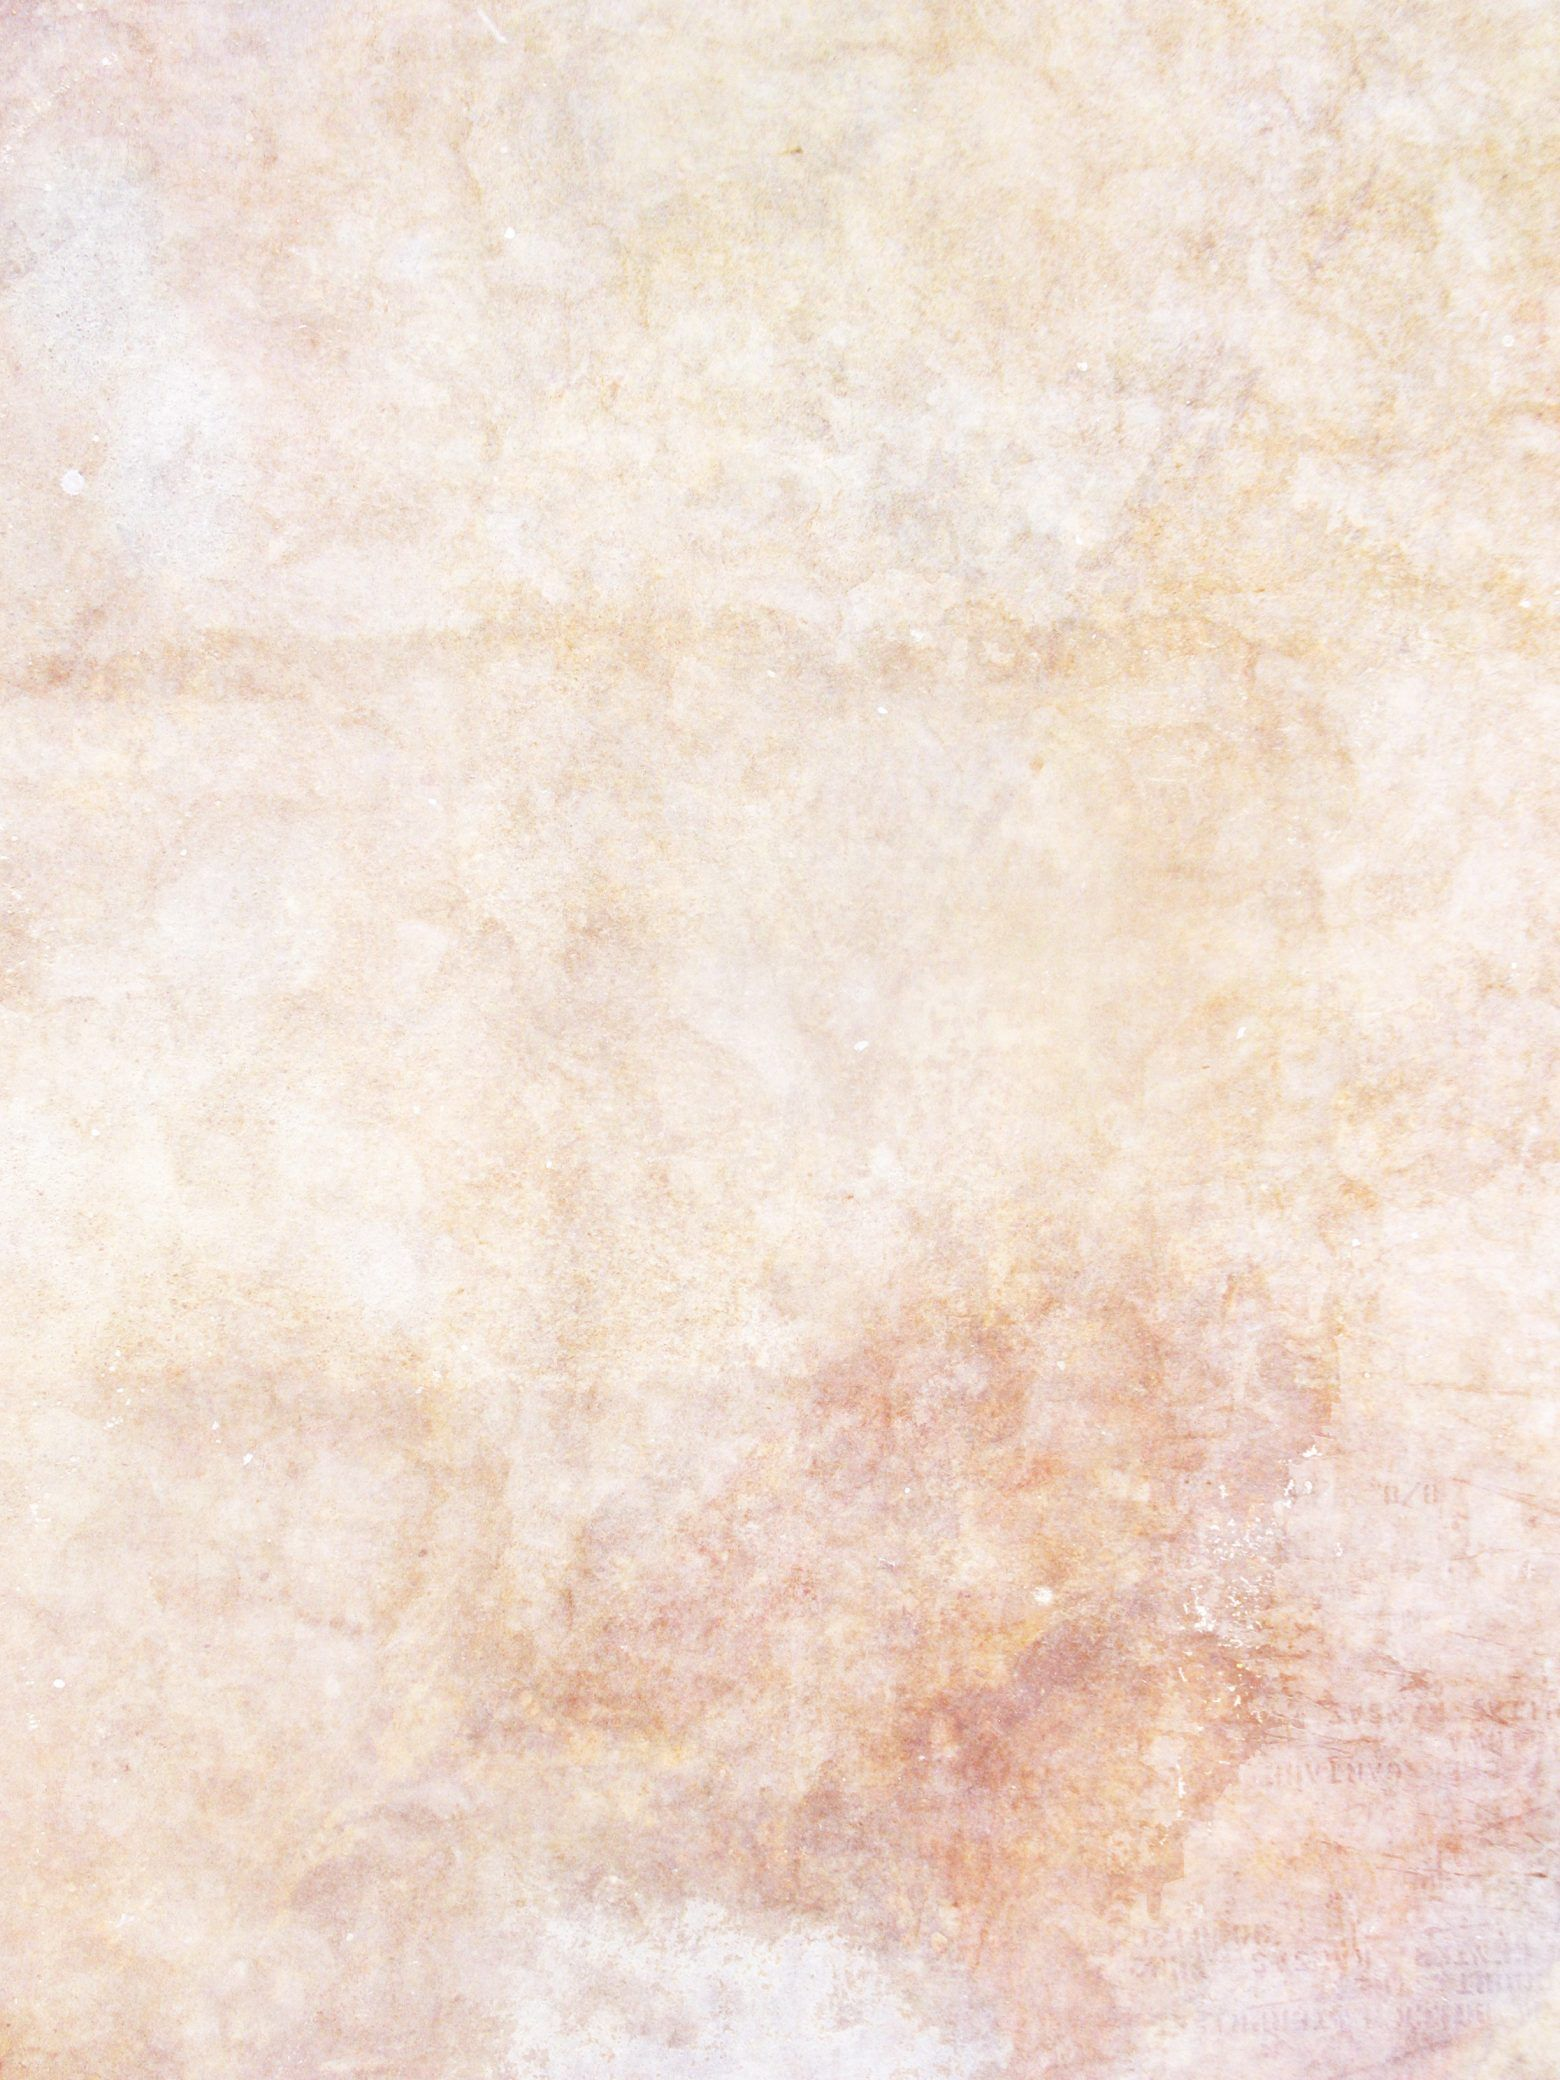 Delicate Grunge Texture In 2020 Watercolor Paper Texture Free